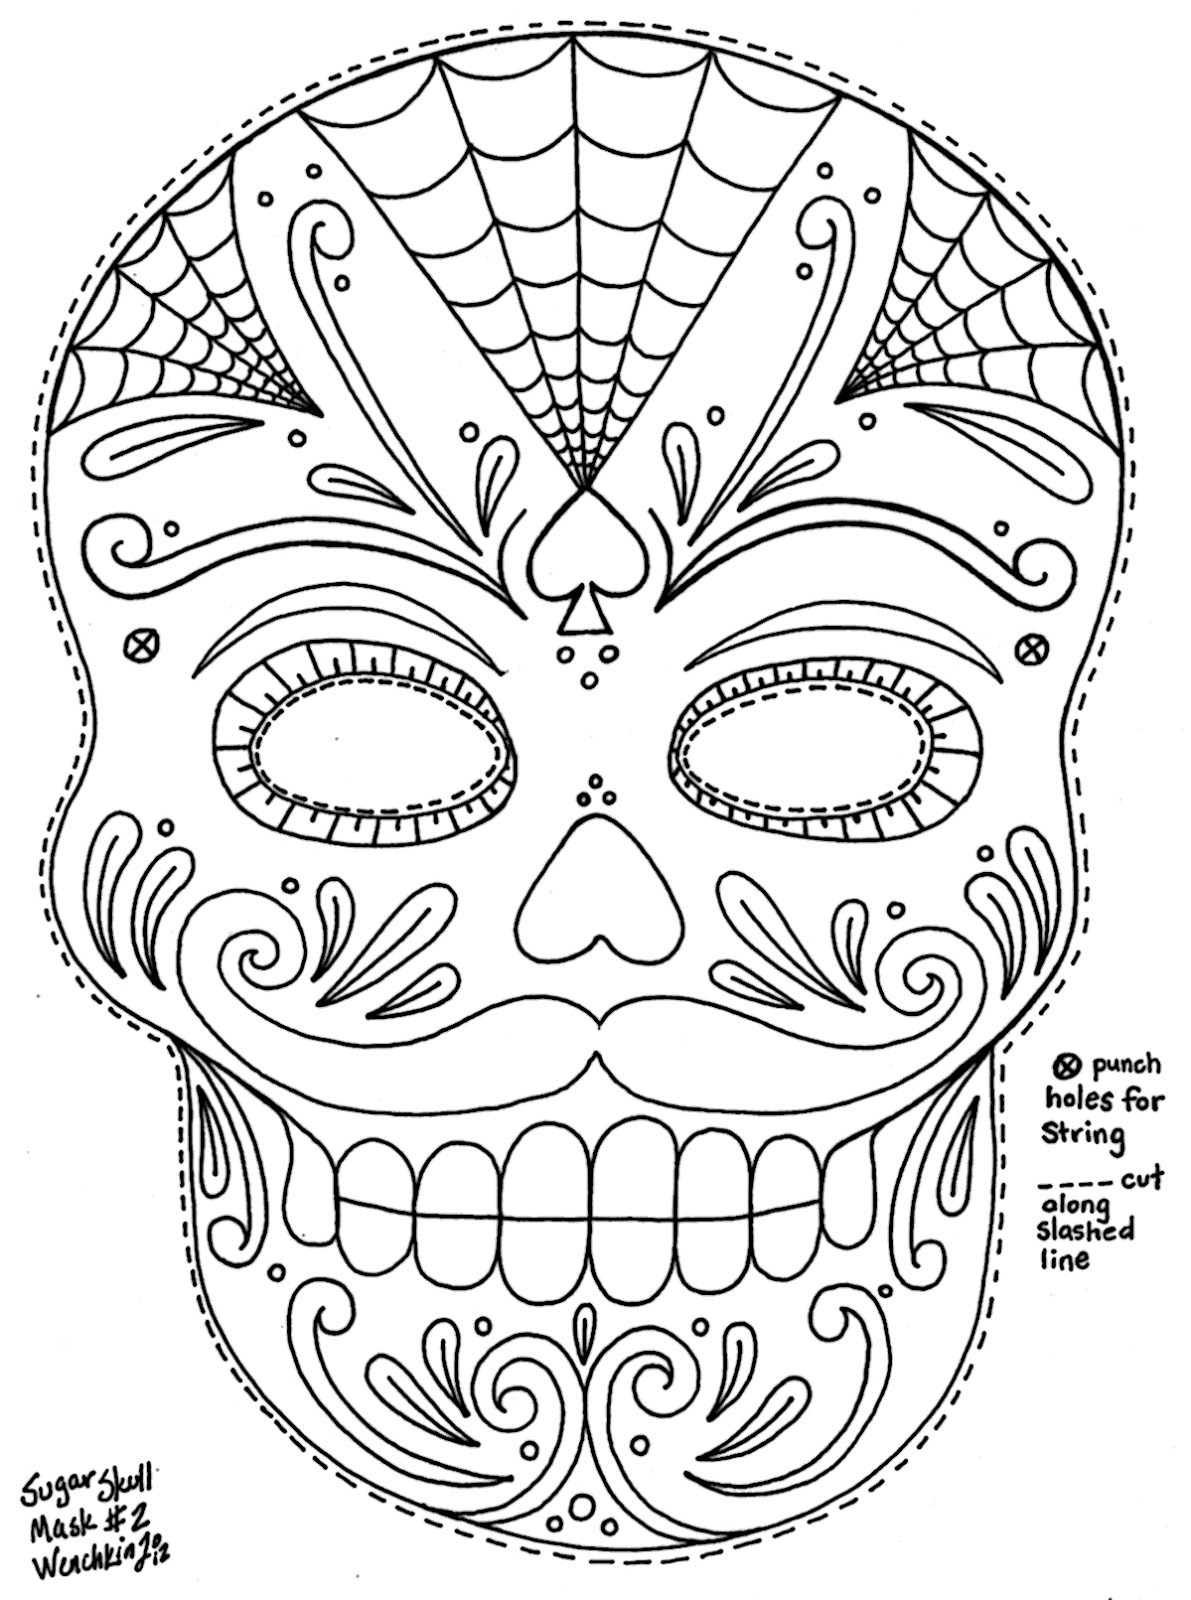 sugar skull coloring pages printable mosaic sugar skull coloring coloring pages printable pages skull coloring sugar